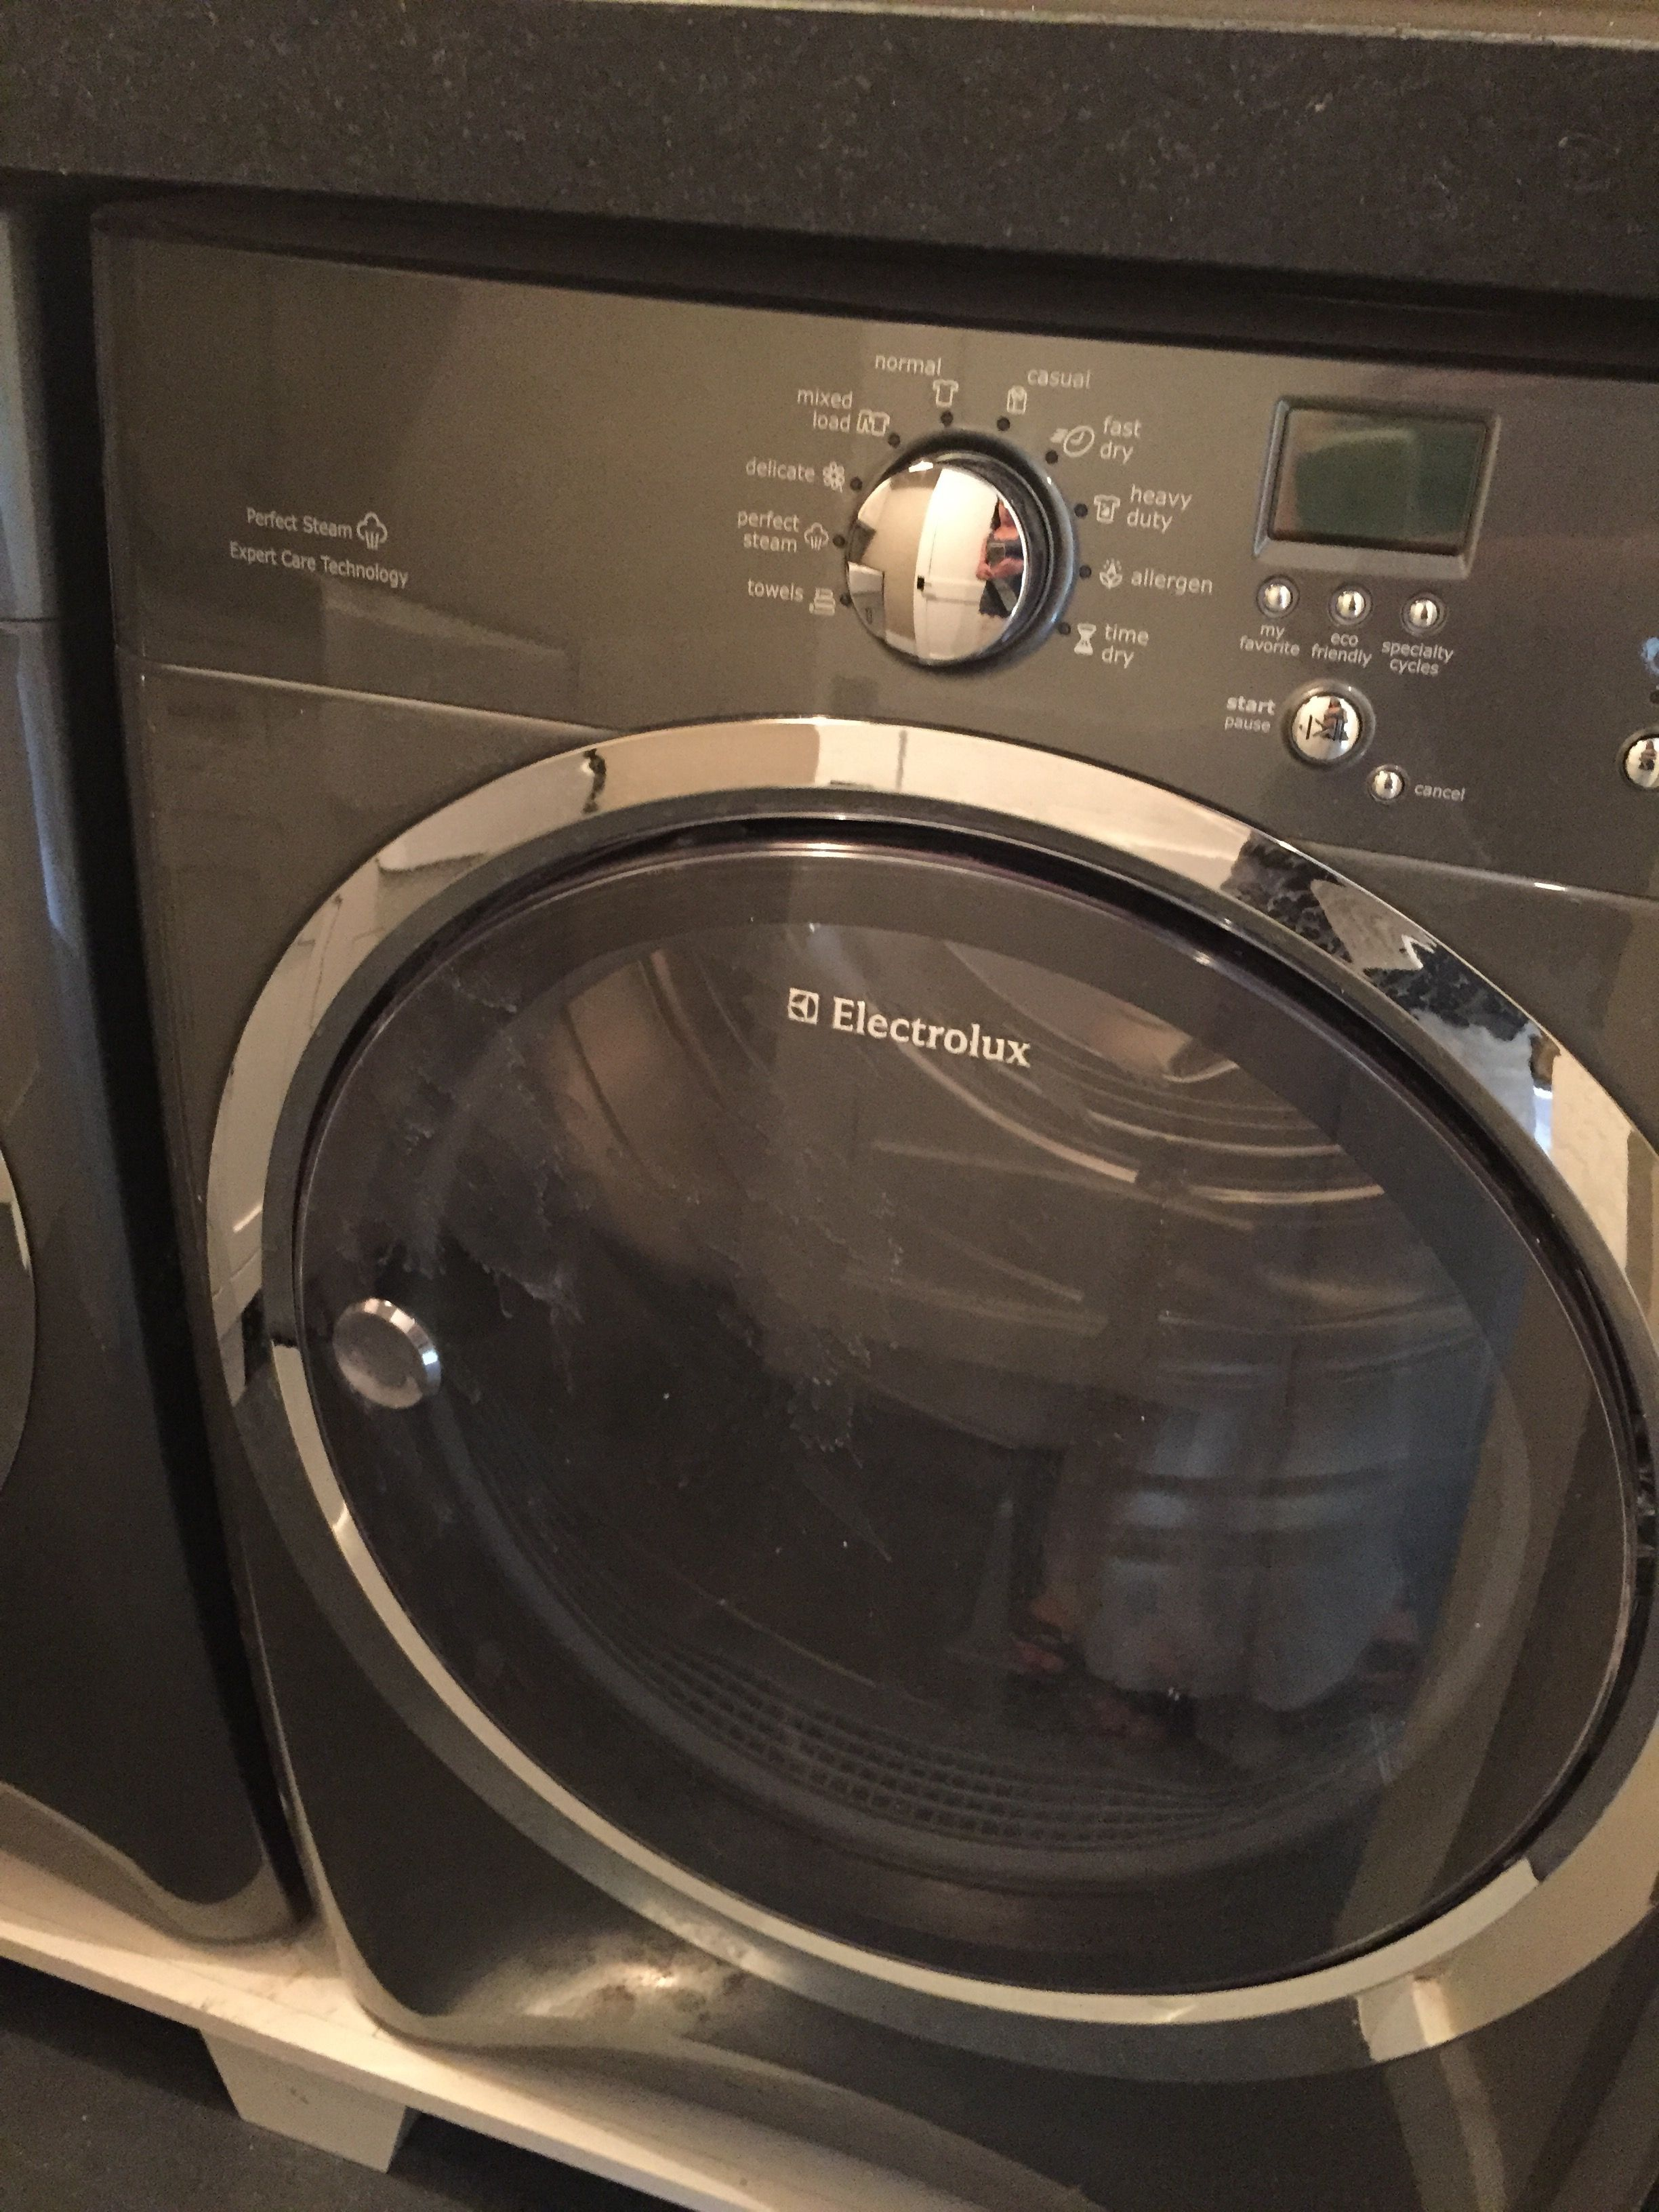 Pretty great looking Washer Dryer Should check into Consumer